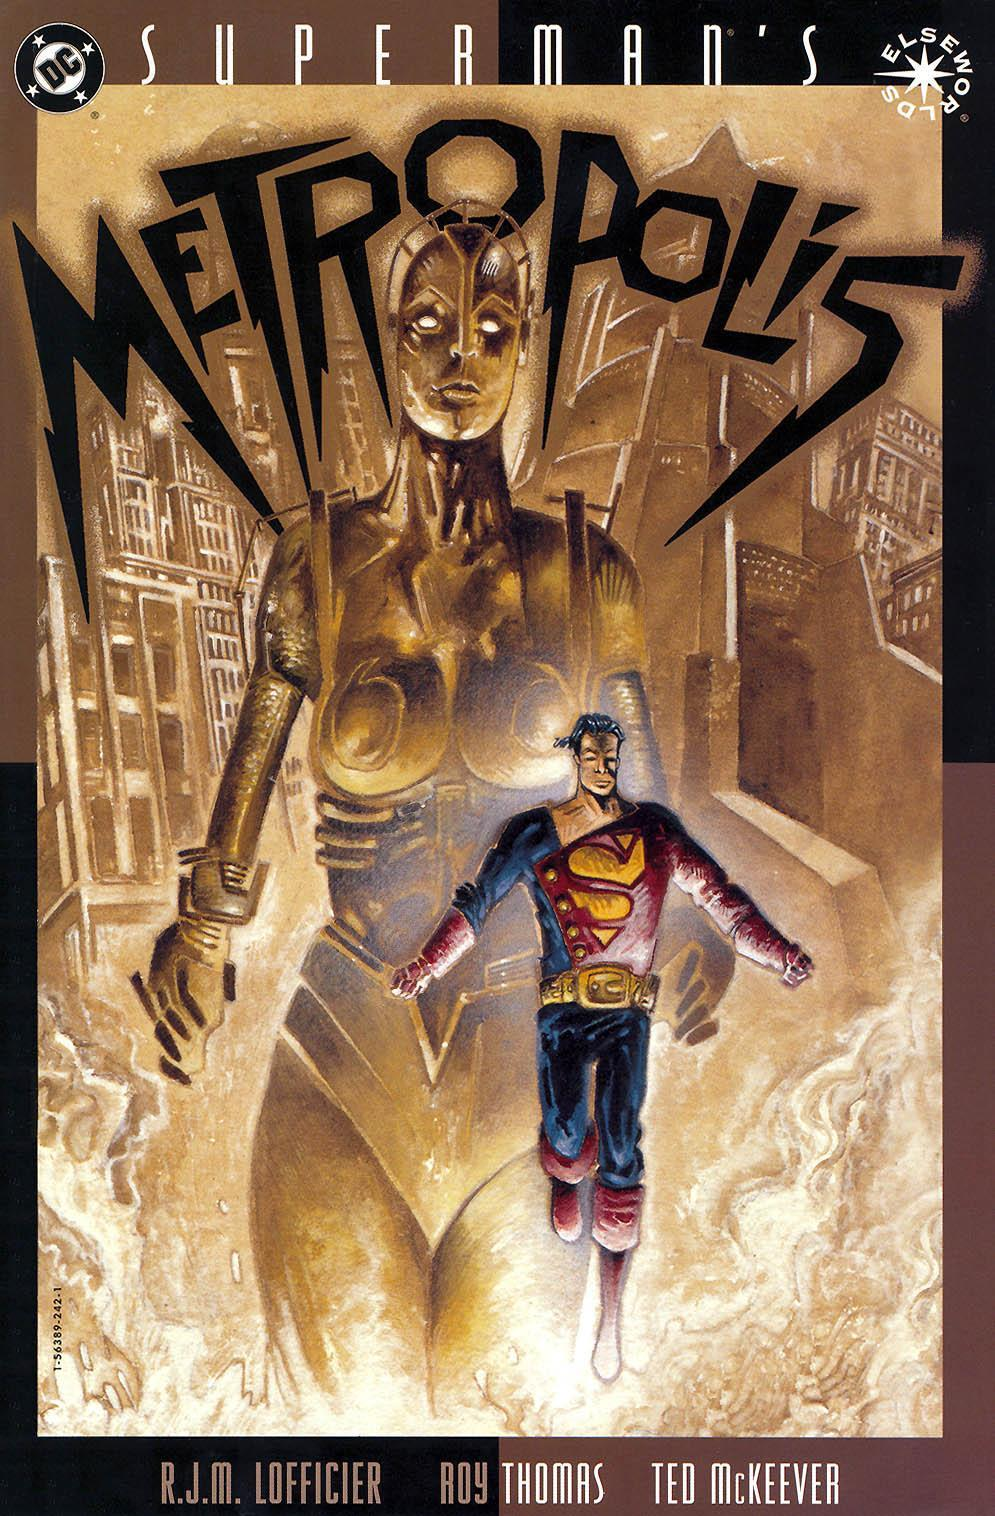 I think this is my favorite Superman - Elseworlds story. I love the story and the art. Superman: War of the Worlds is a close second though.